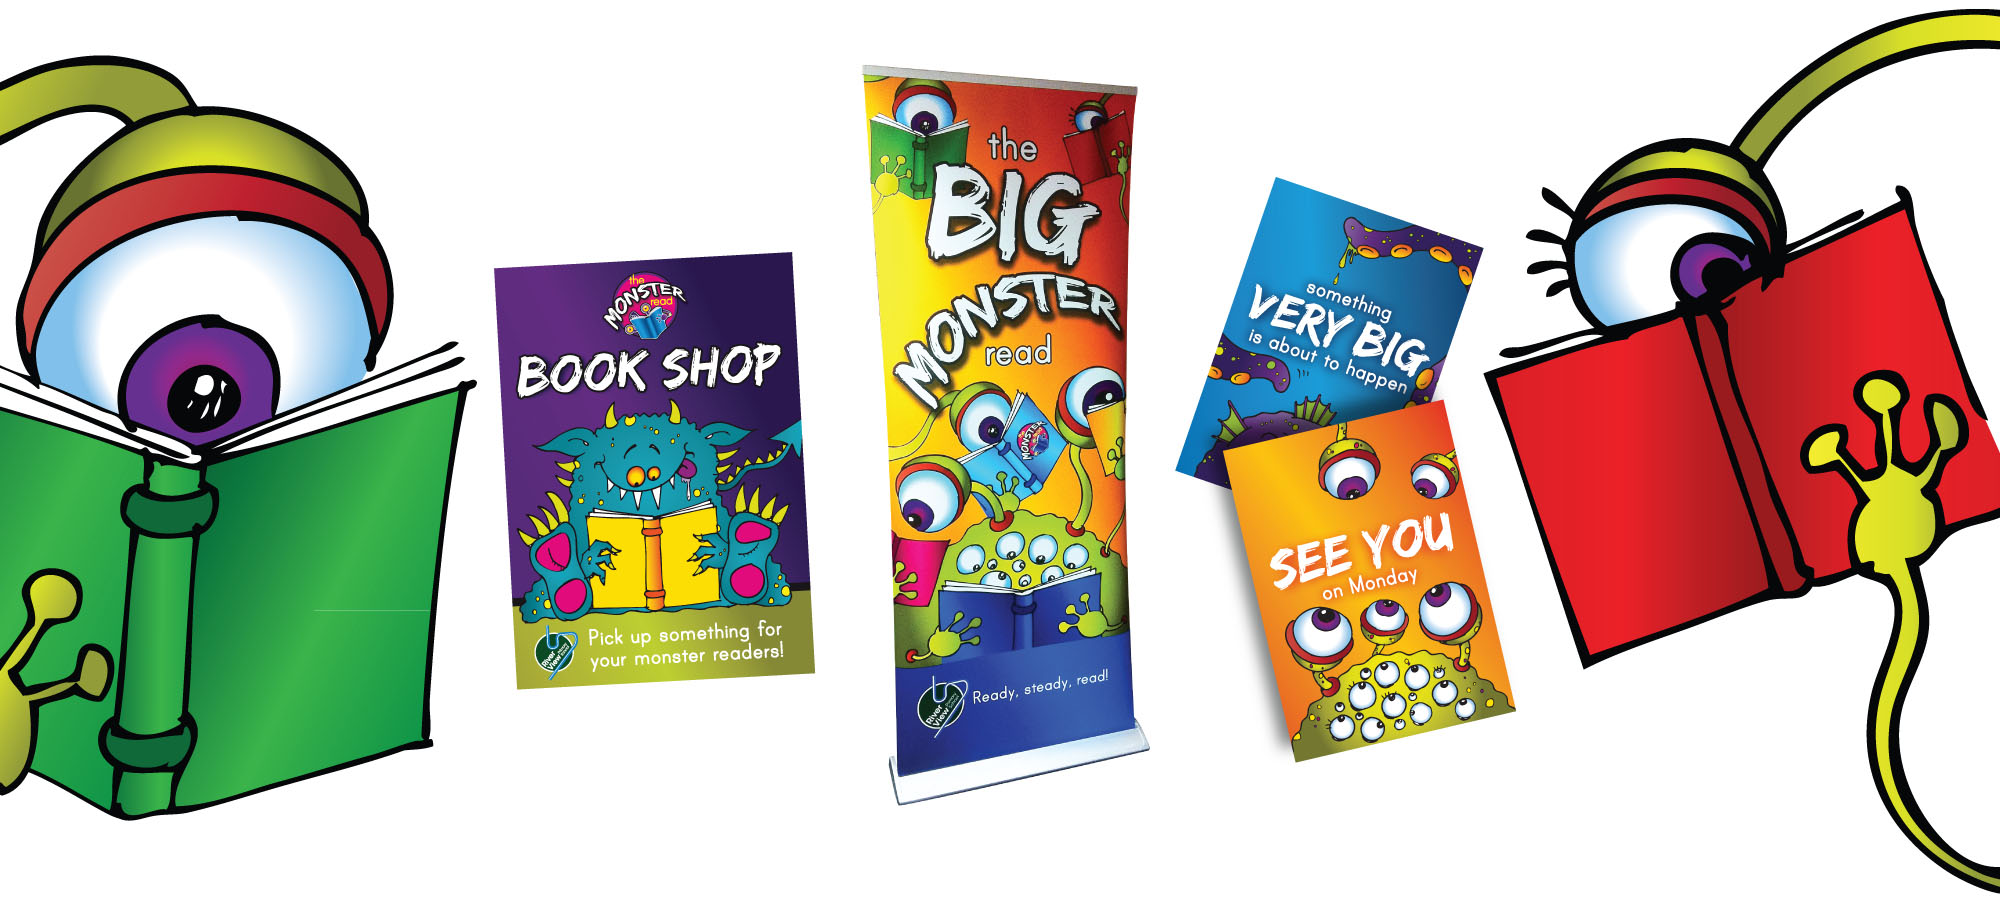 marketing campaign River View Primary School Monster Read